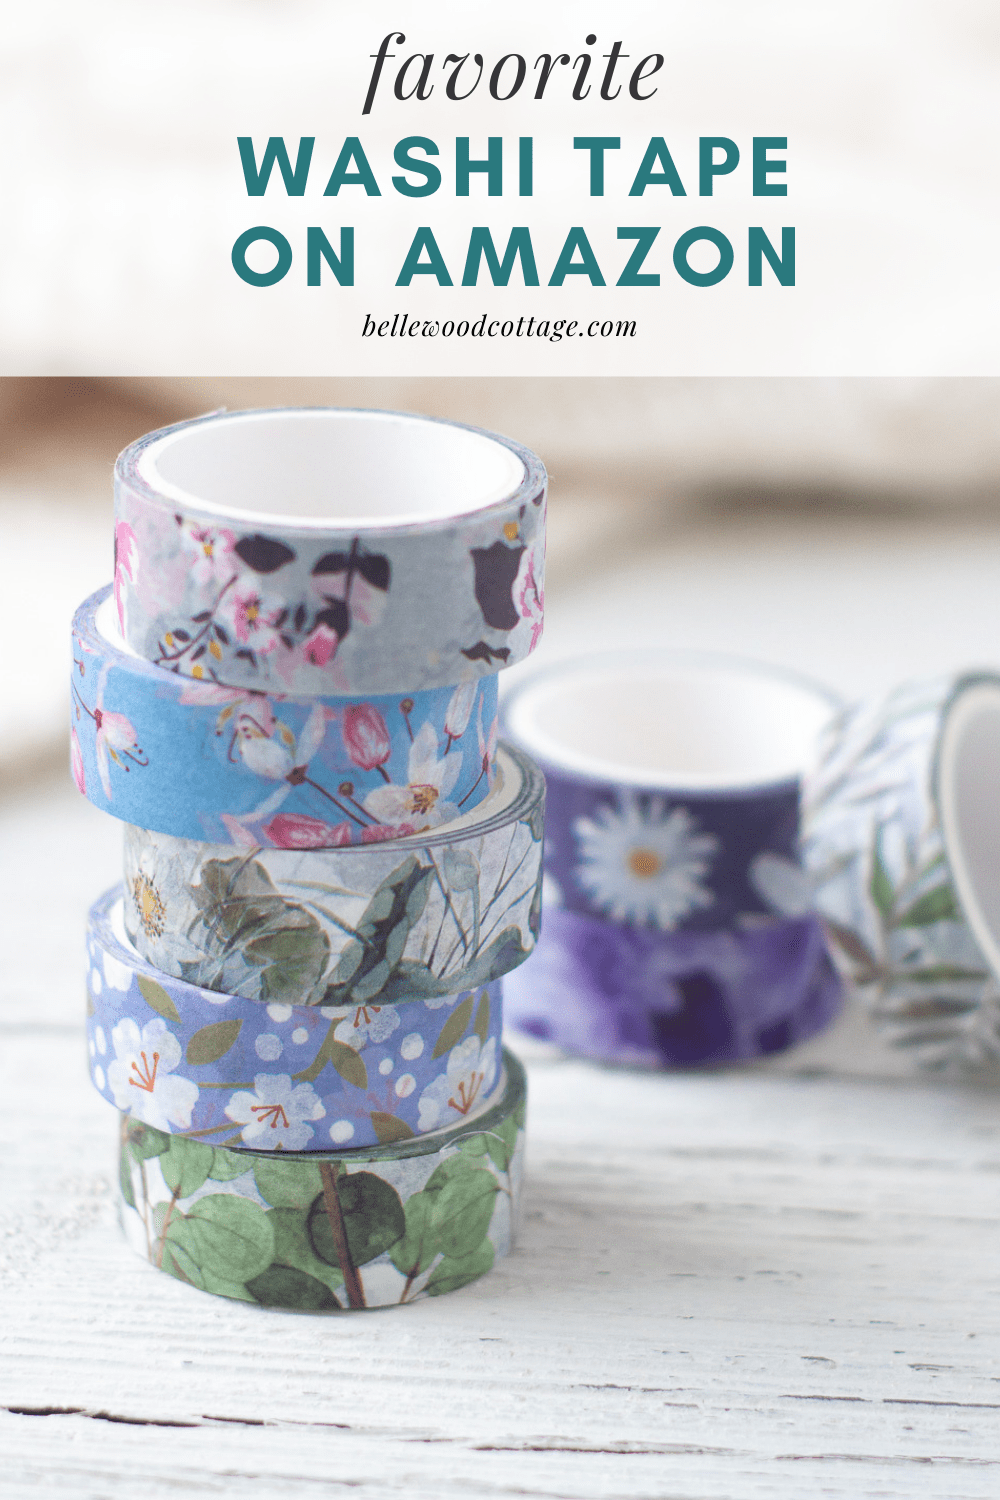 """A stack of colorful washi tape rolls with the words, """"favorite washi tape on amazon""""."""